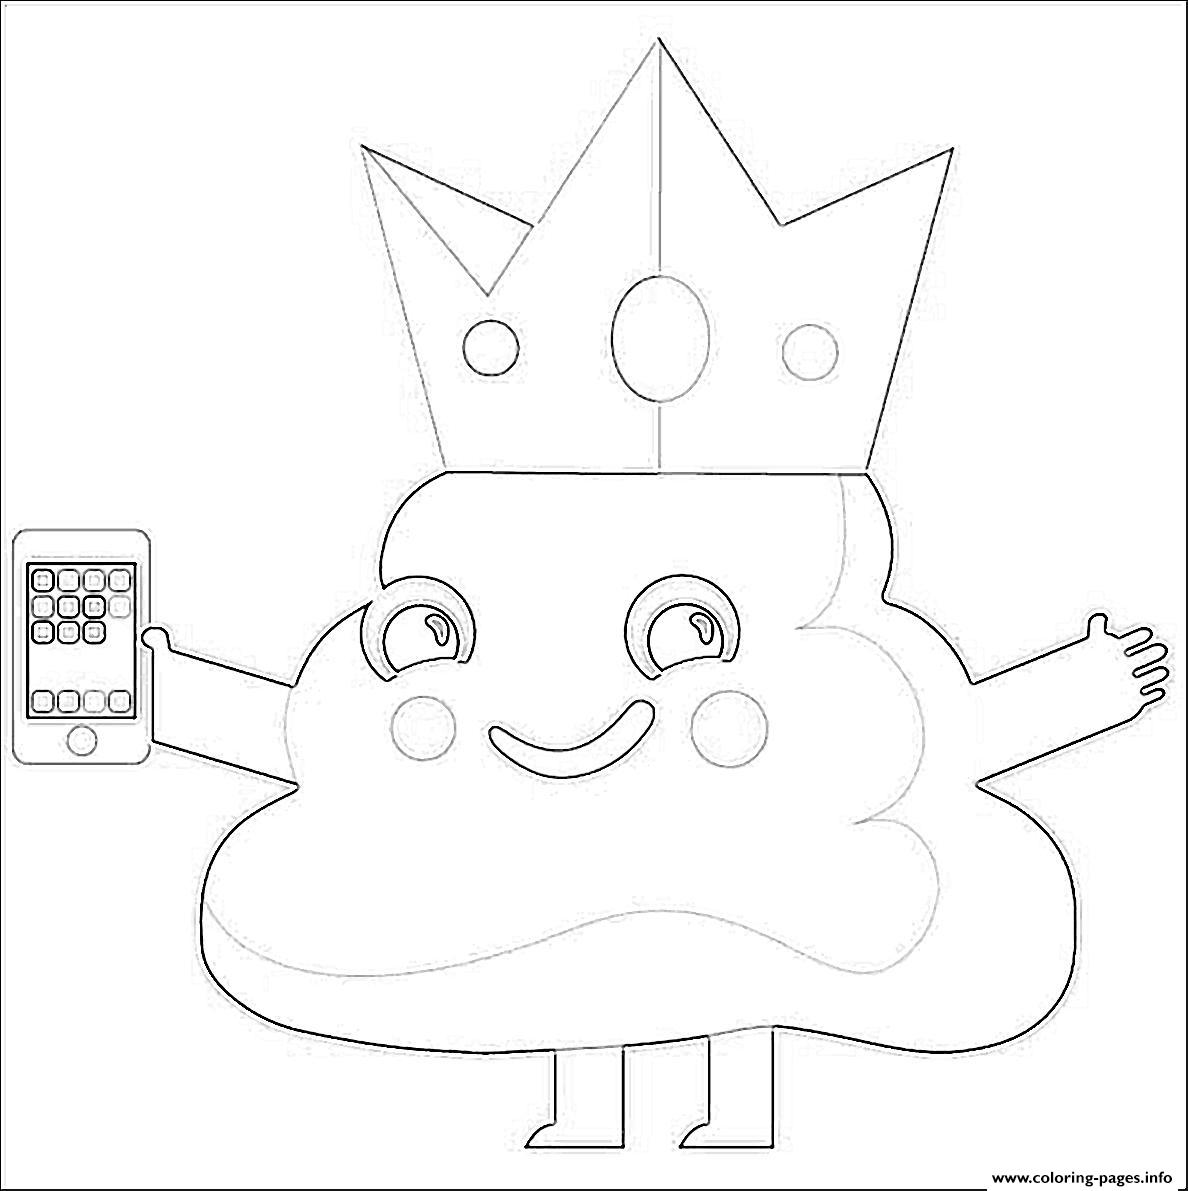 Poop Emoji King Phone coloring pages